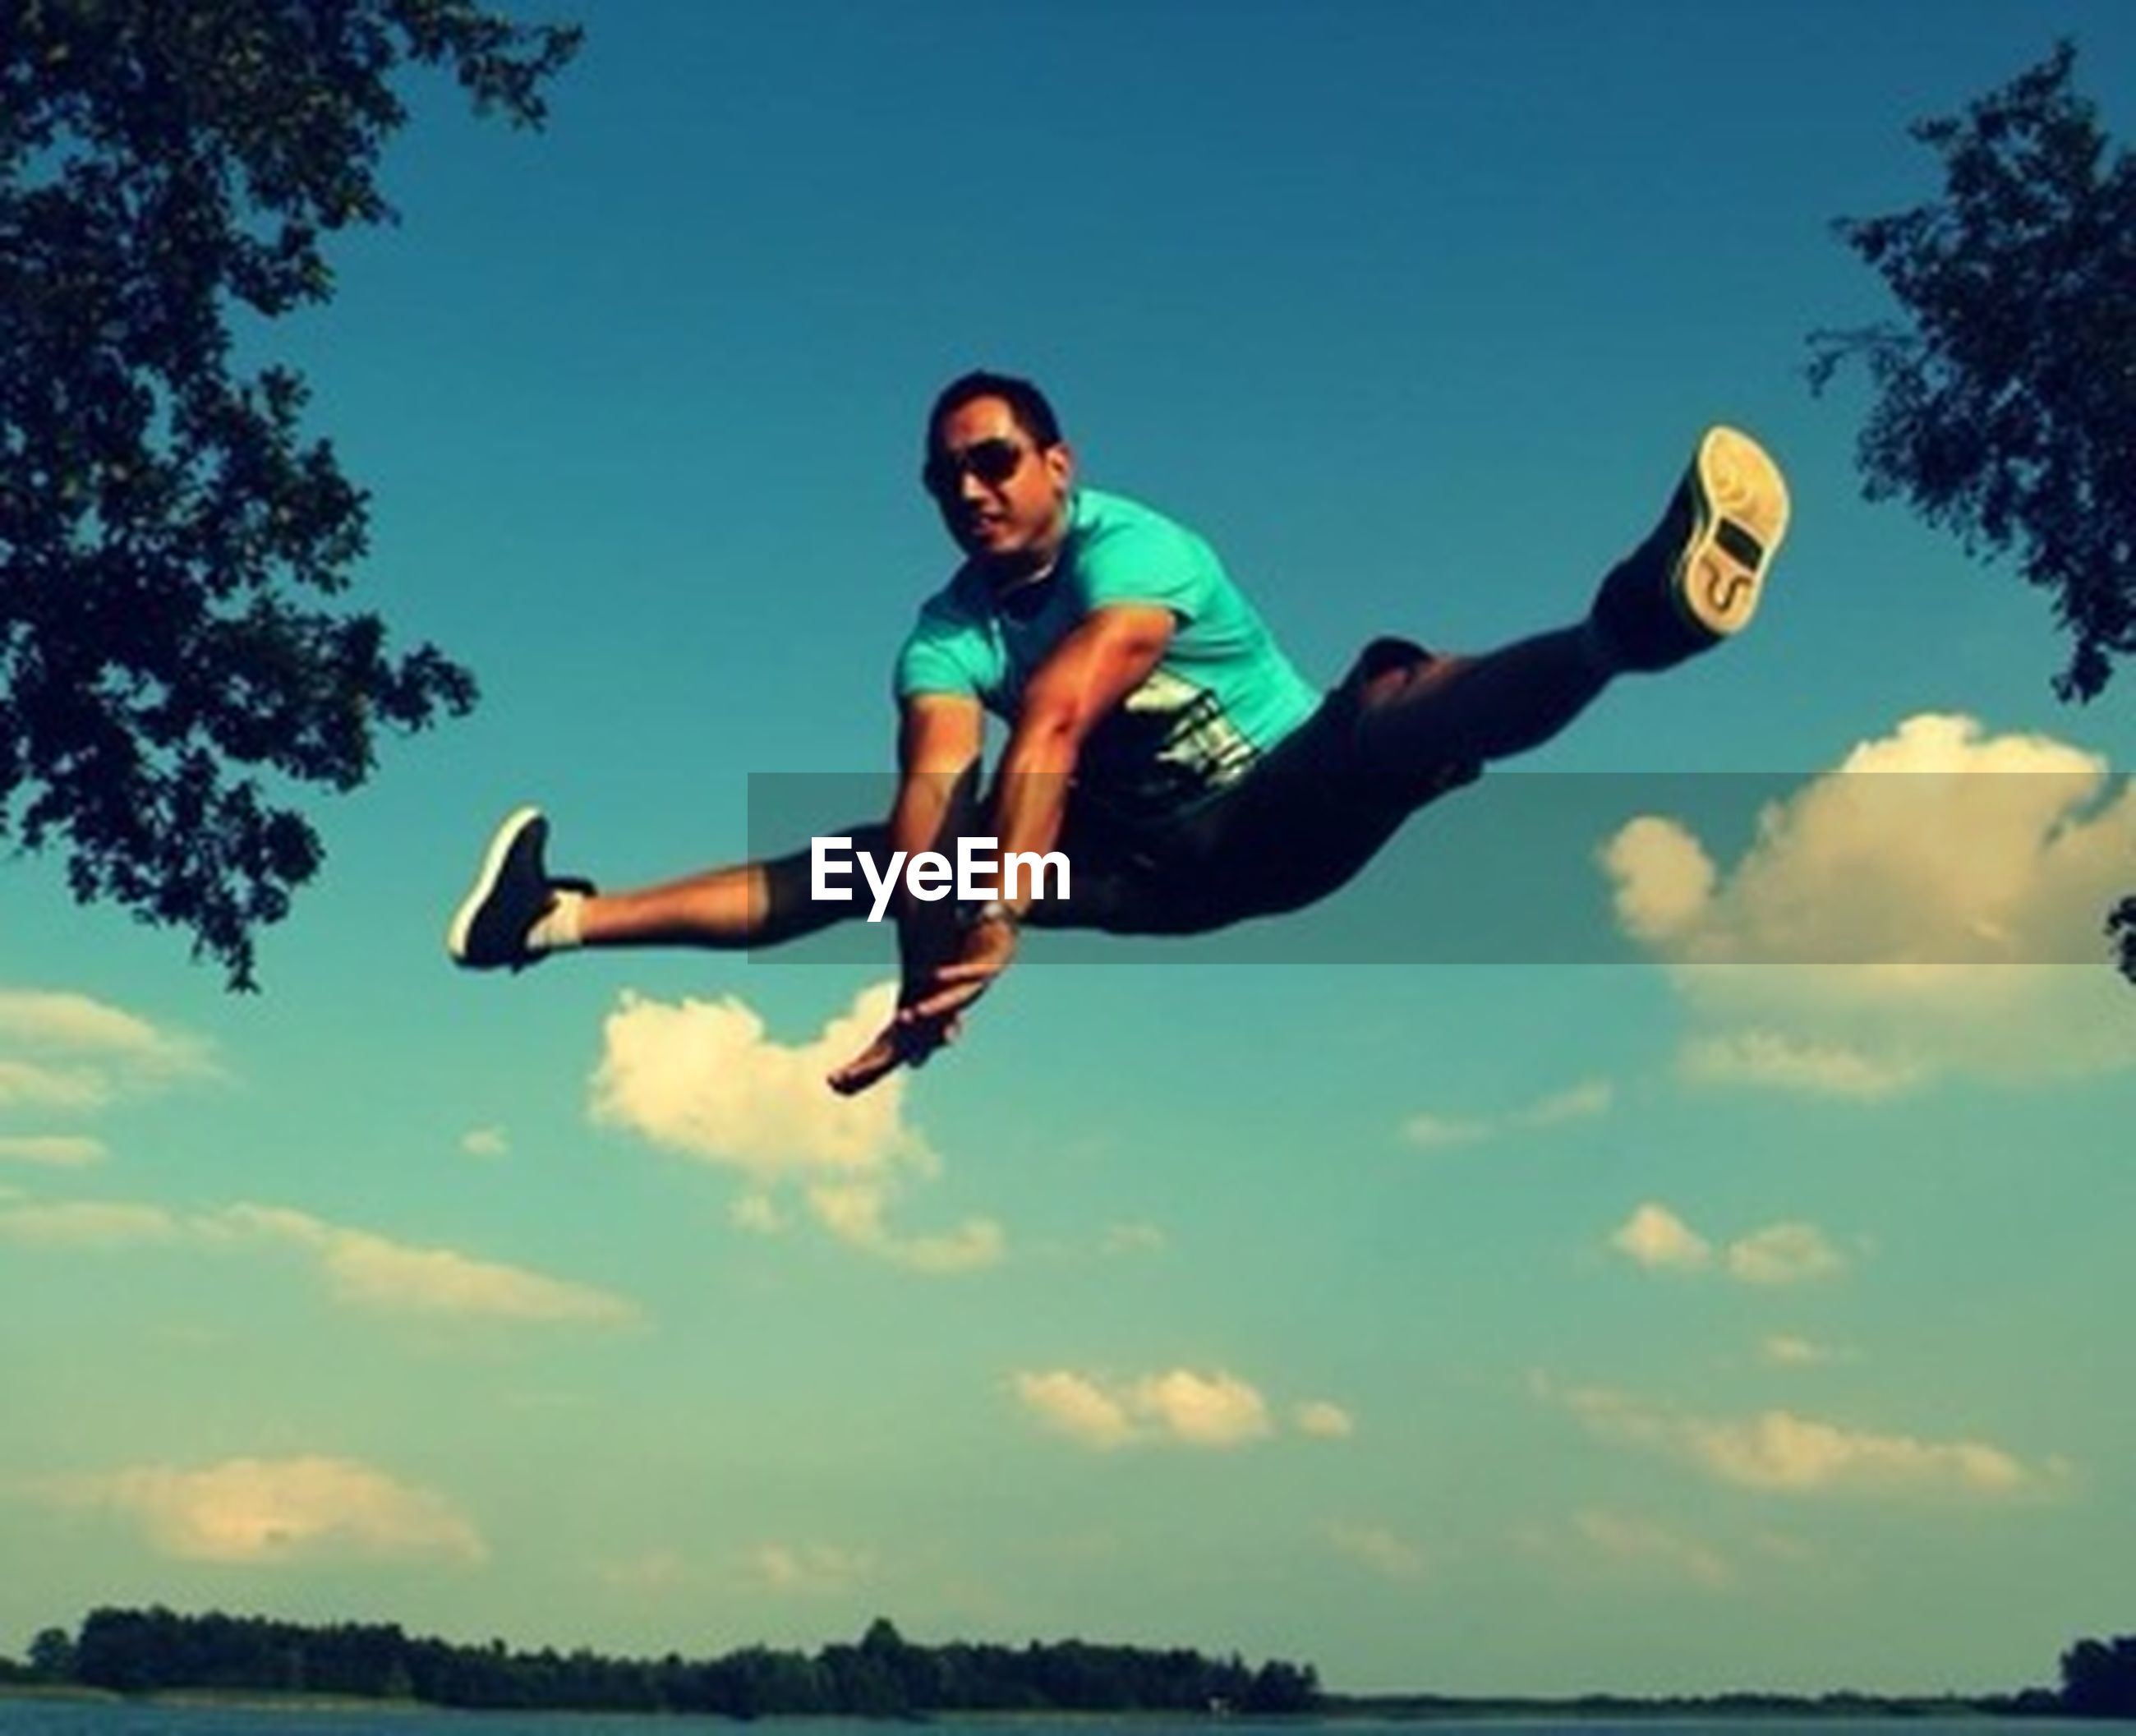 lifestyles, leisure activity, full length, person, fun, enjoyment, mid-air, casual clothing, young adult, happiness, childhood, young men, sky, jumping, boys, vacations, togetherness, smiling